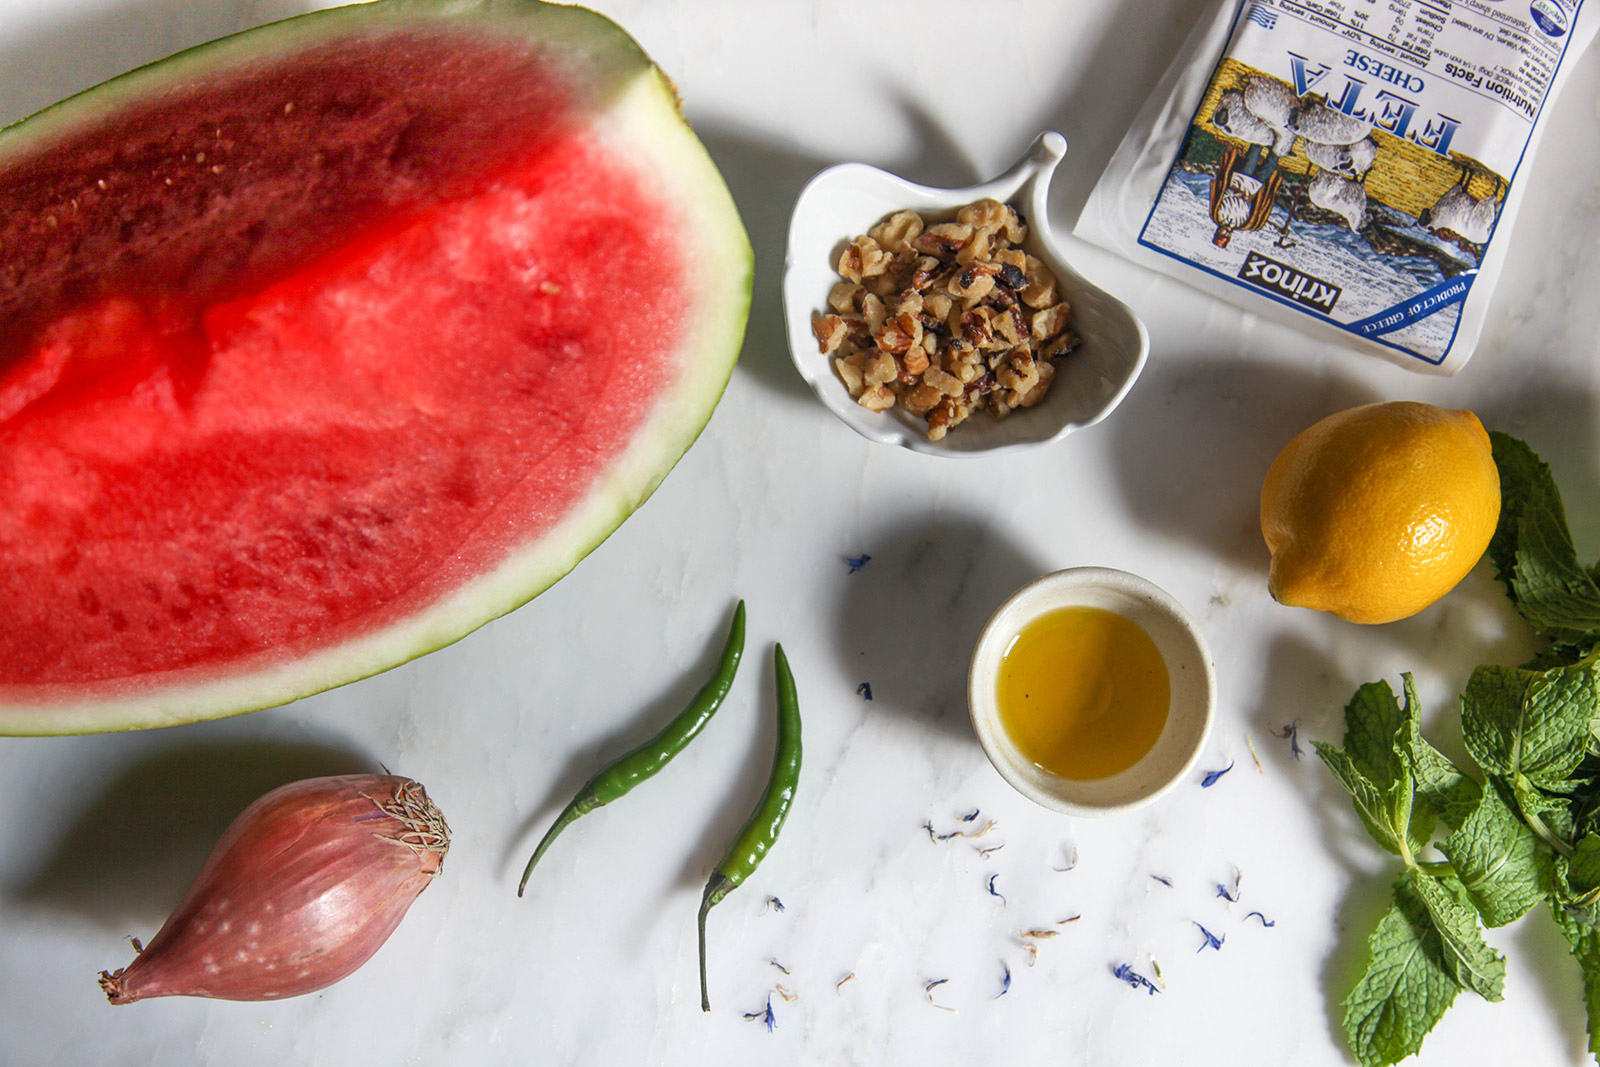 Ingredients for making Watermelon Salad with Mint, Feta, Walnuts & a Little Bit of Spicy Kick